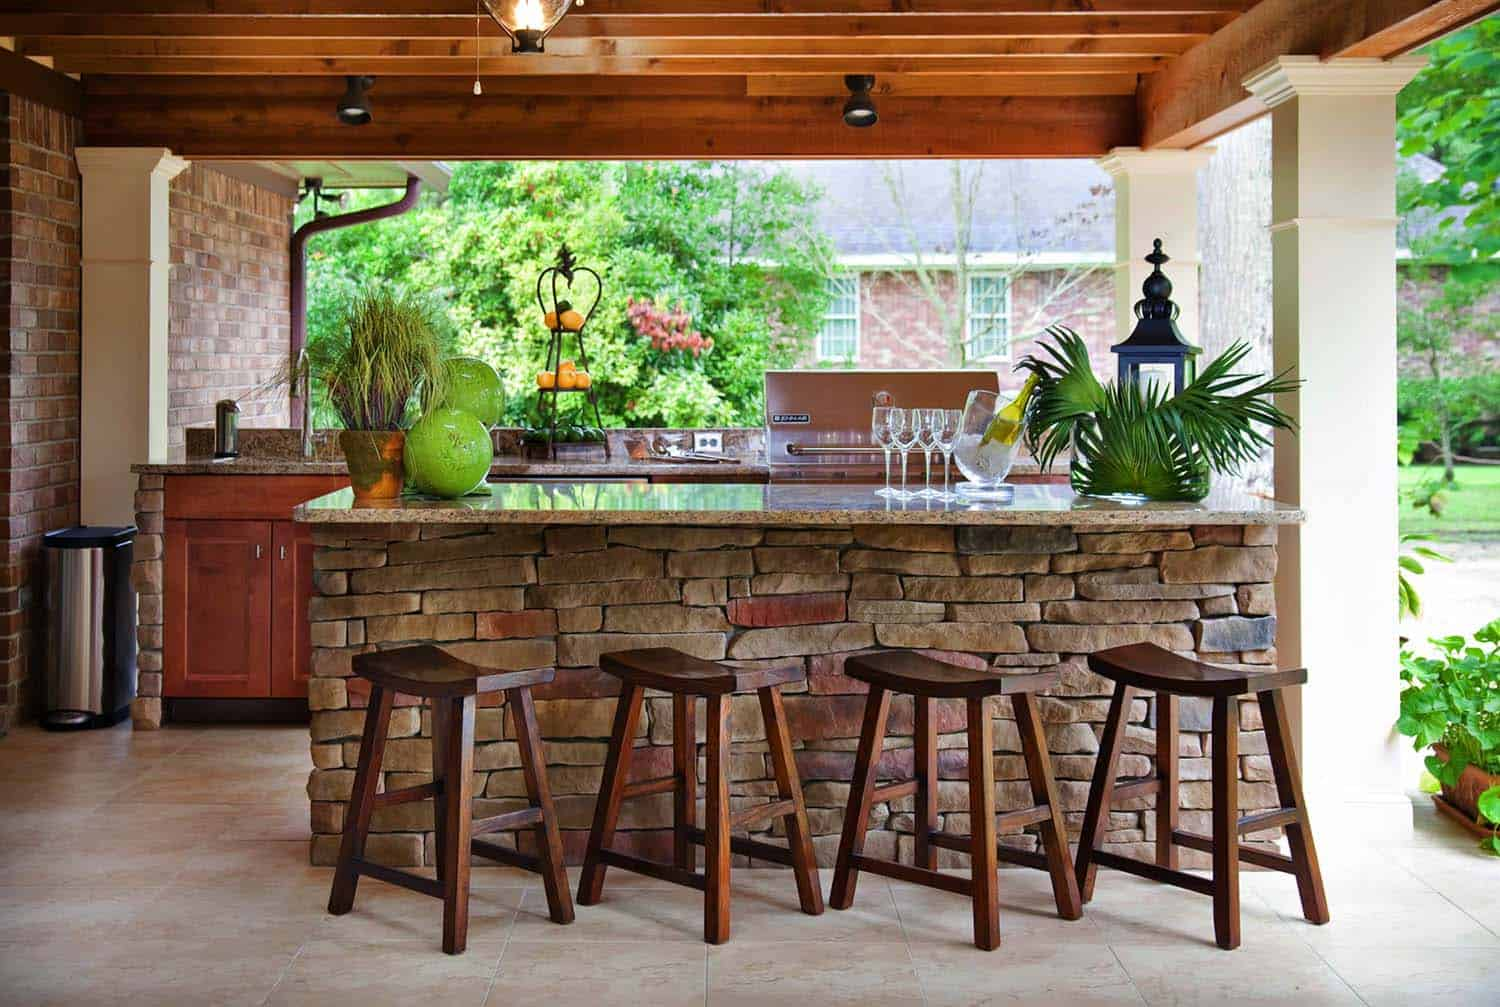 Superior Outdoor Kitchens Bars Entertaining 01 1 Kindesign